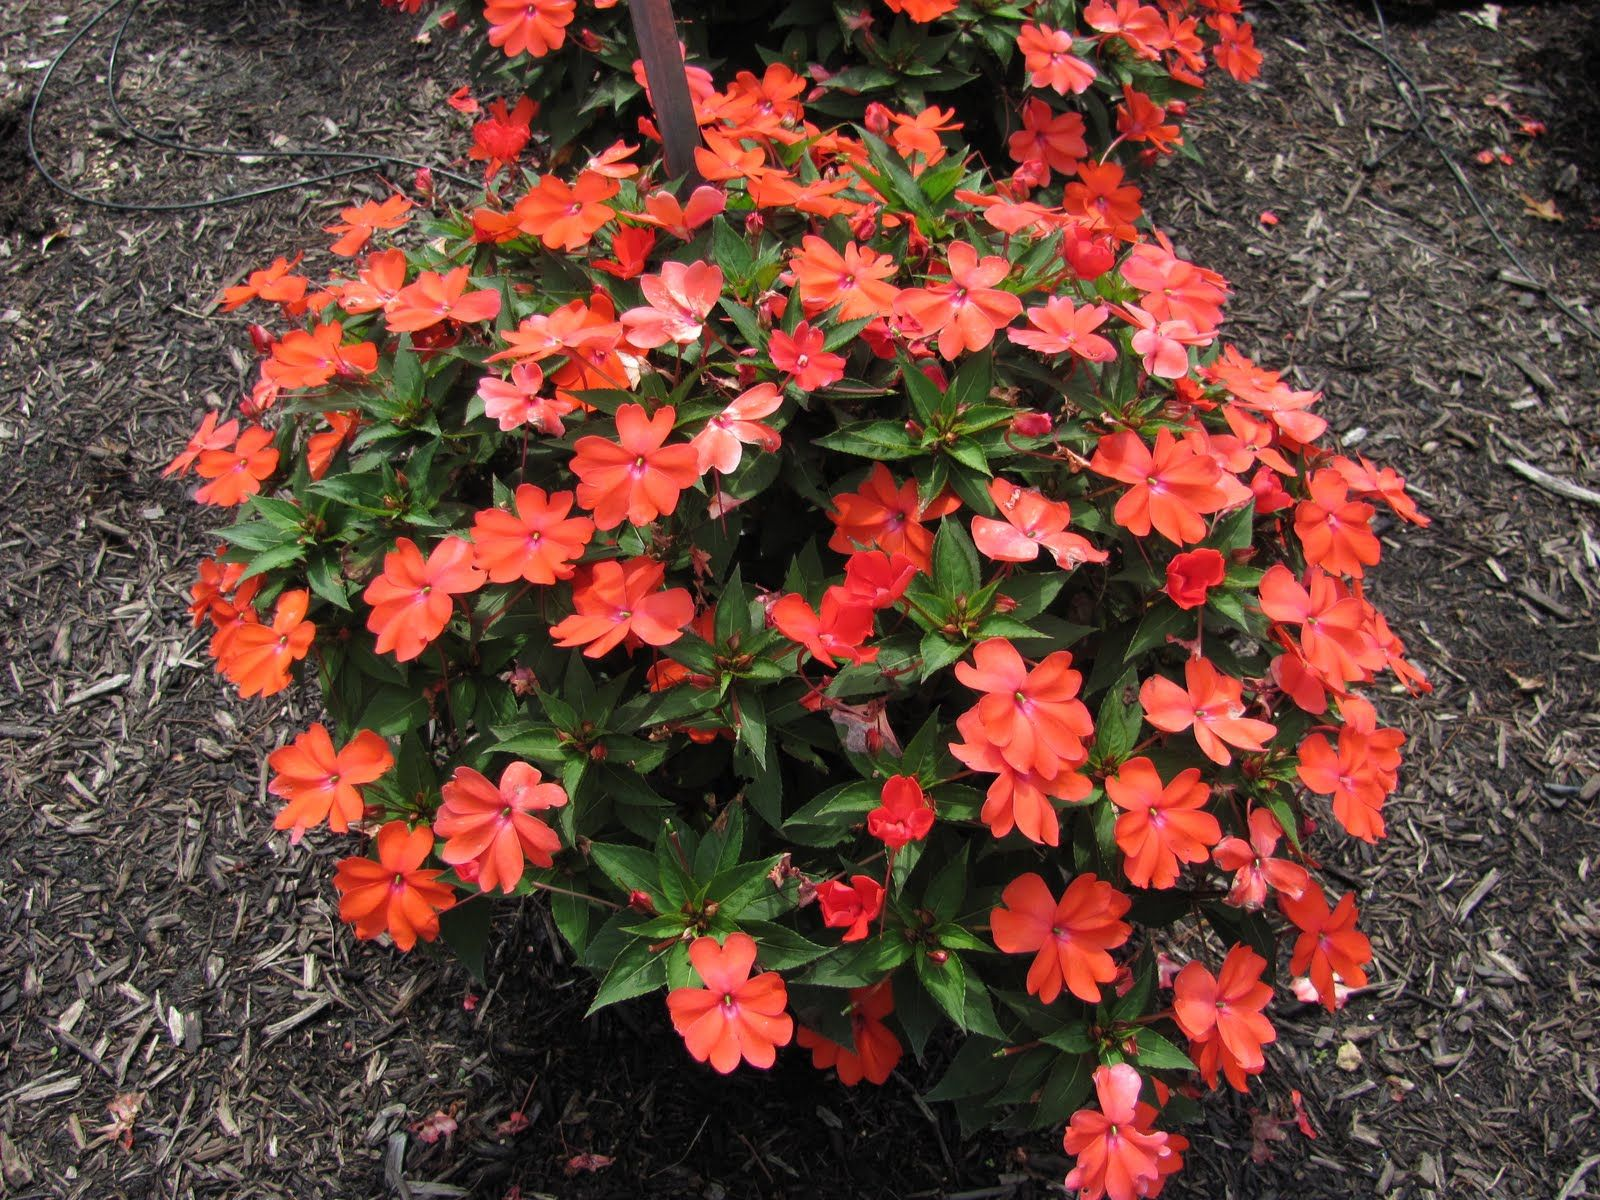 Franklin County (PA) Master Gardeners: Best Annual Flowers in 2010